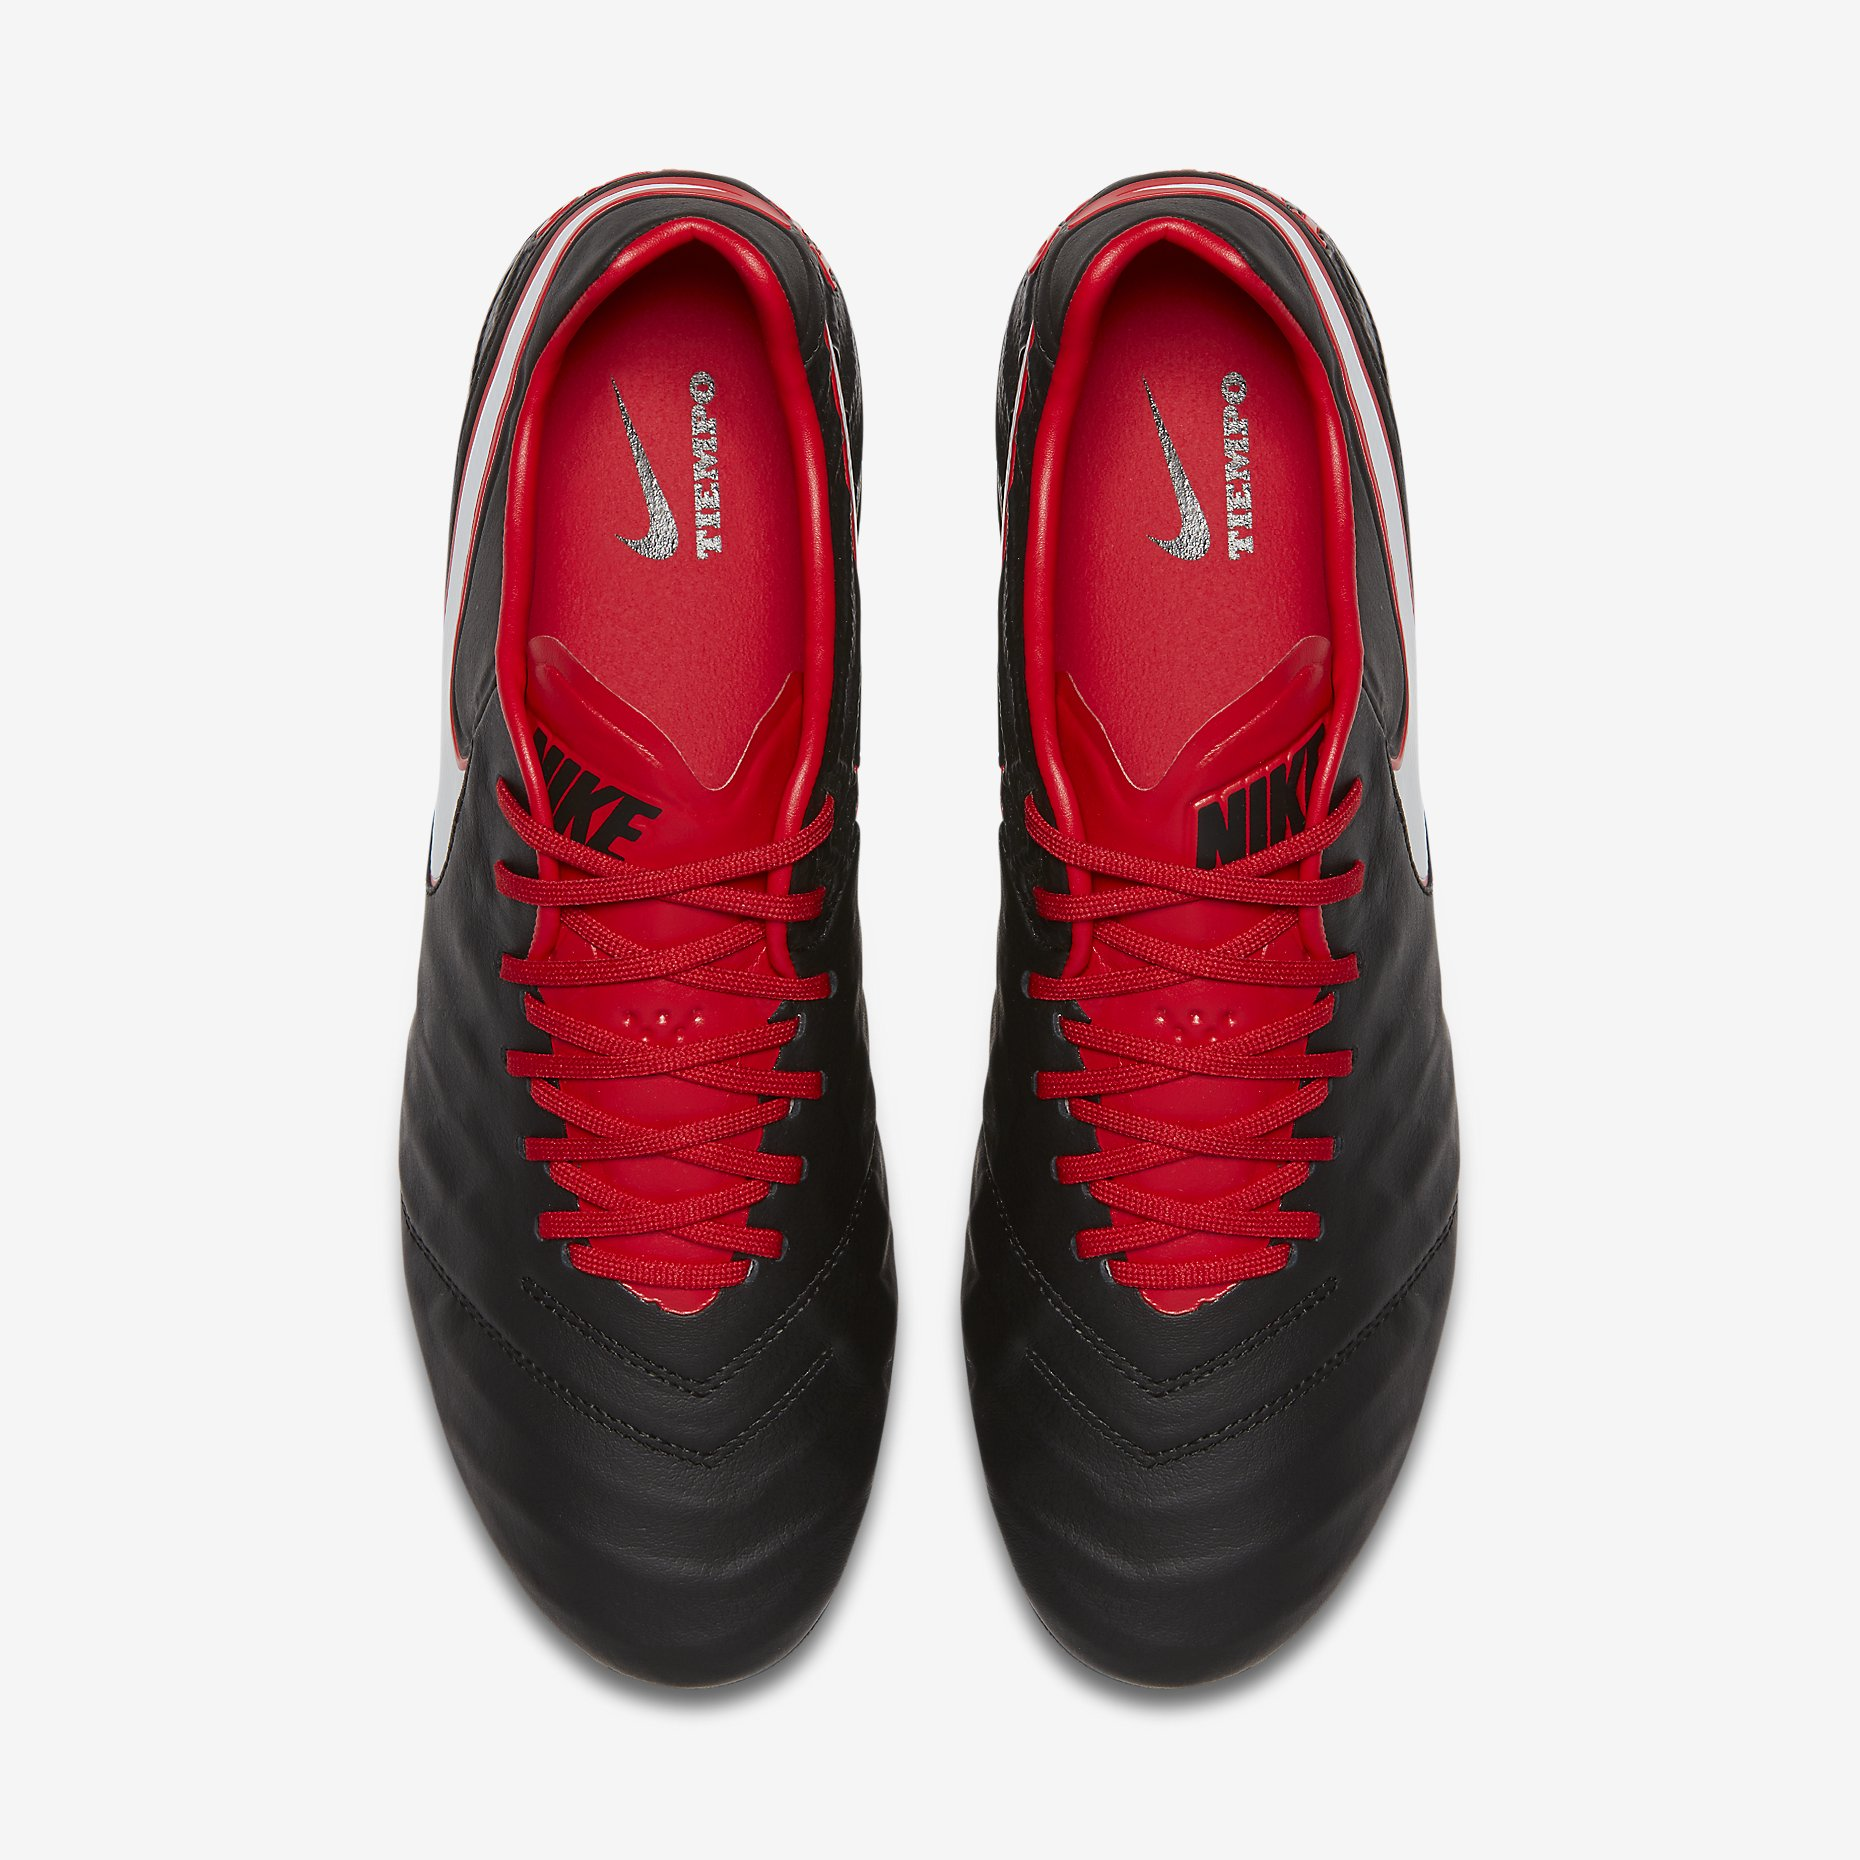 cf0ece689176 ... Click to enlarge image  nike tiempo legend vi fg derby days black university red white white d.jpg  ...